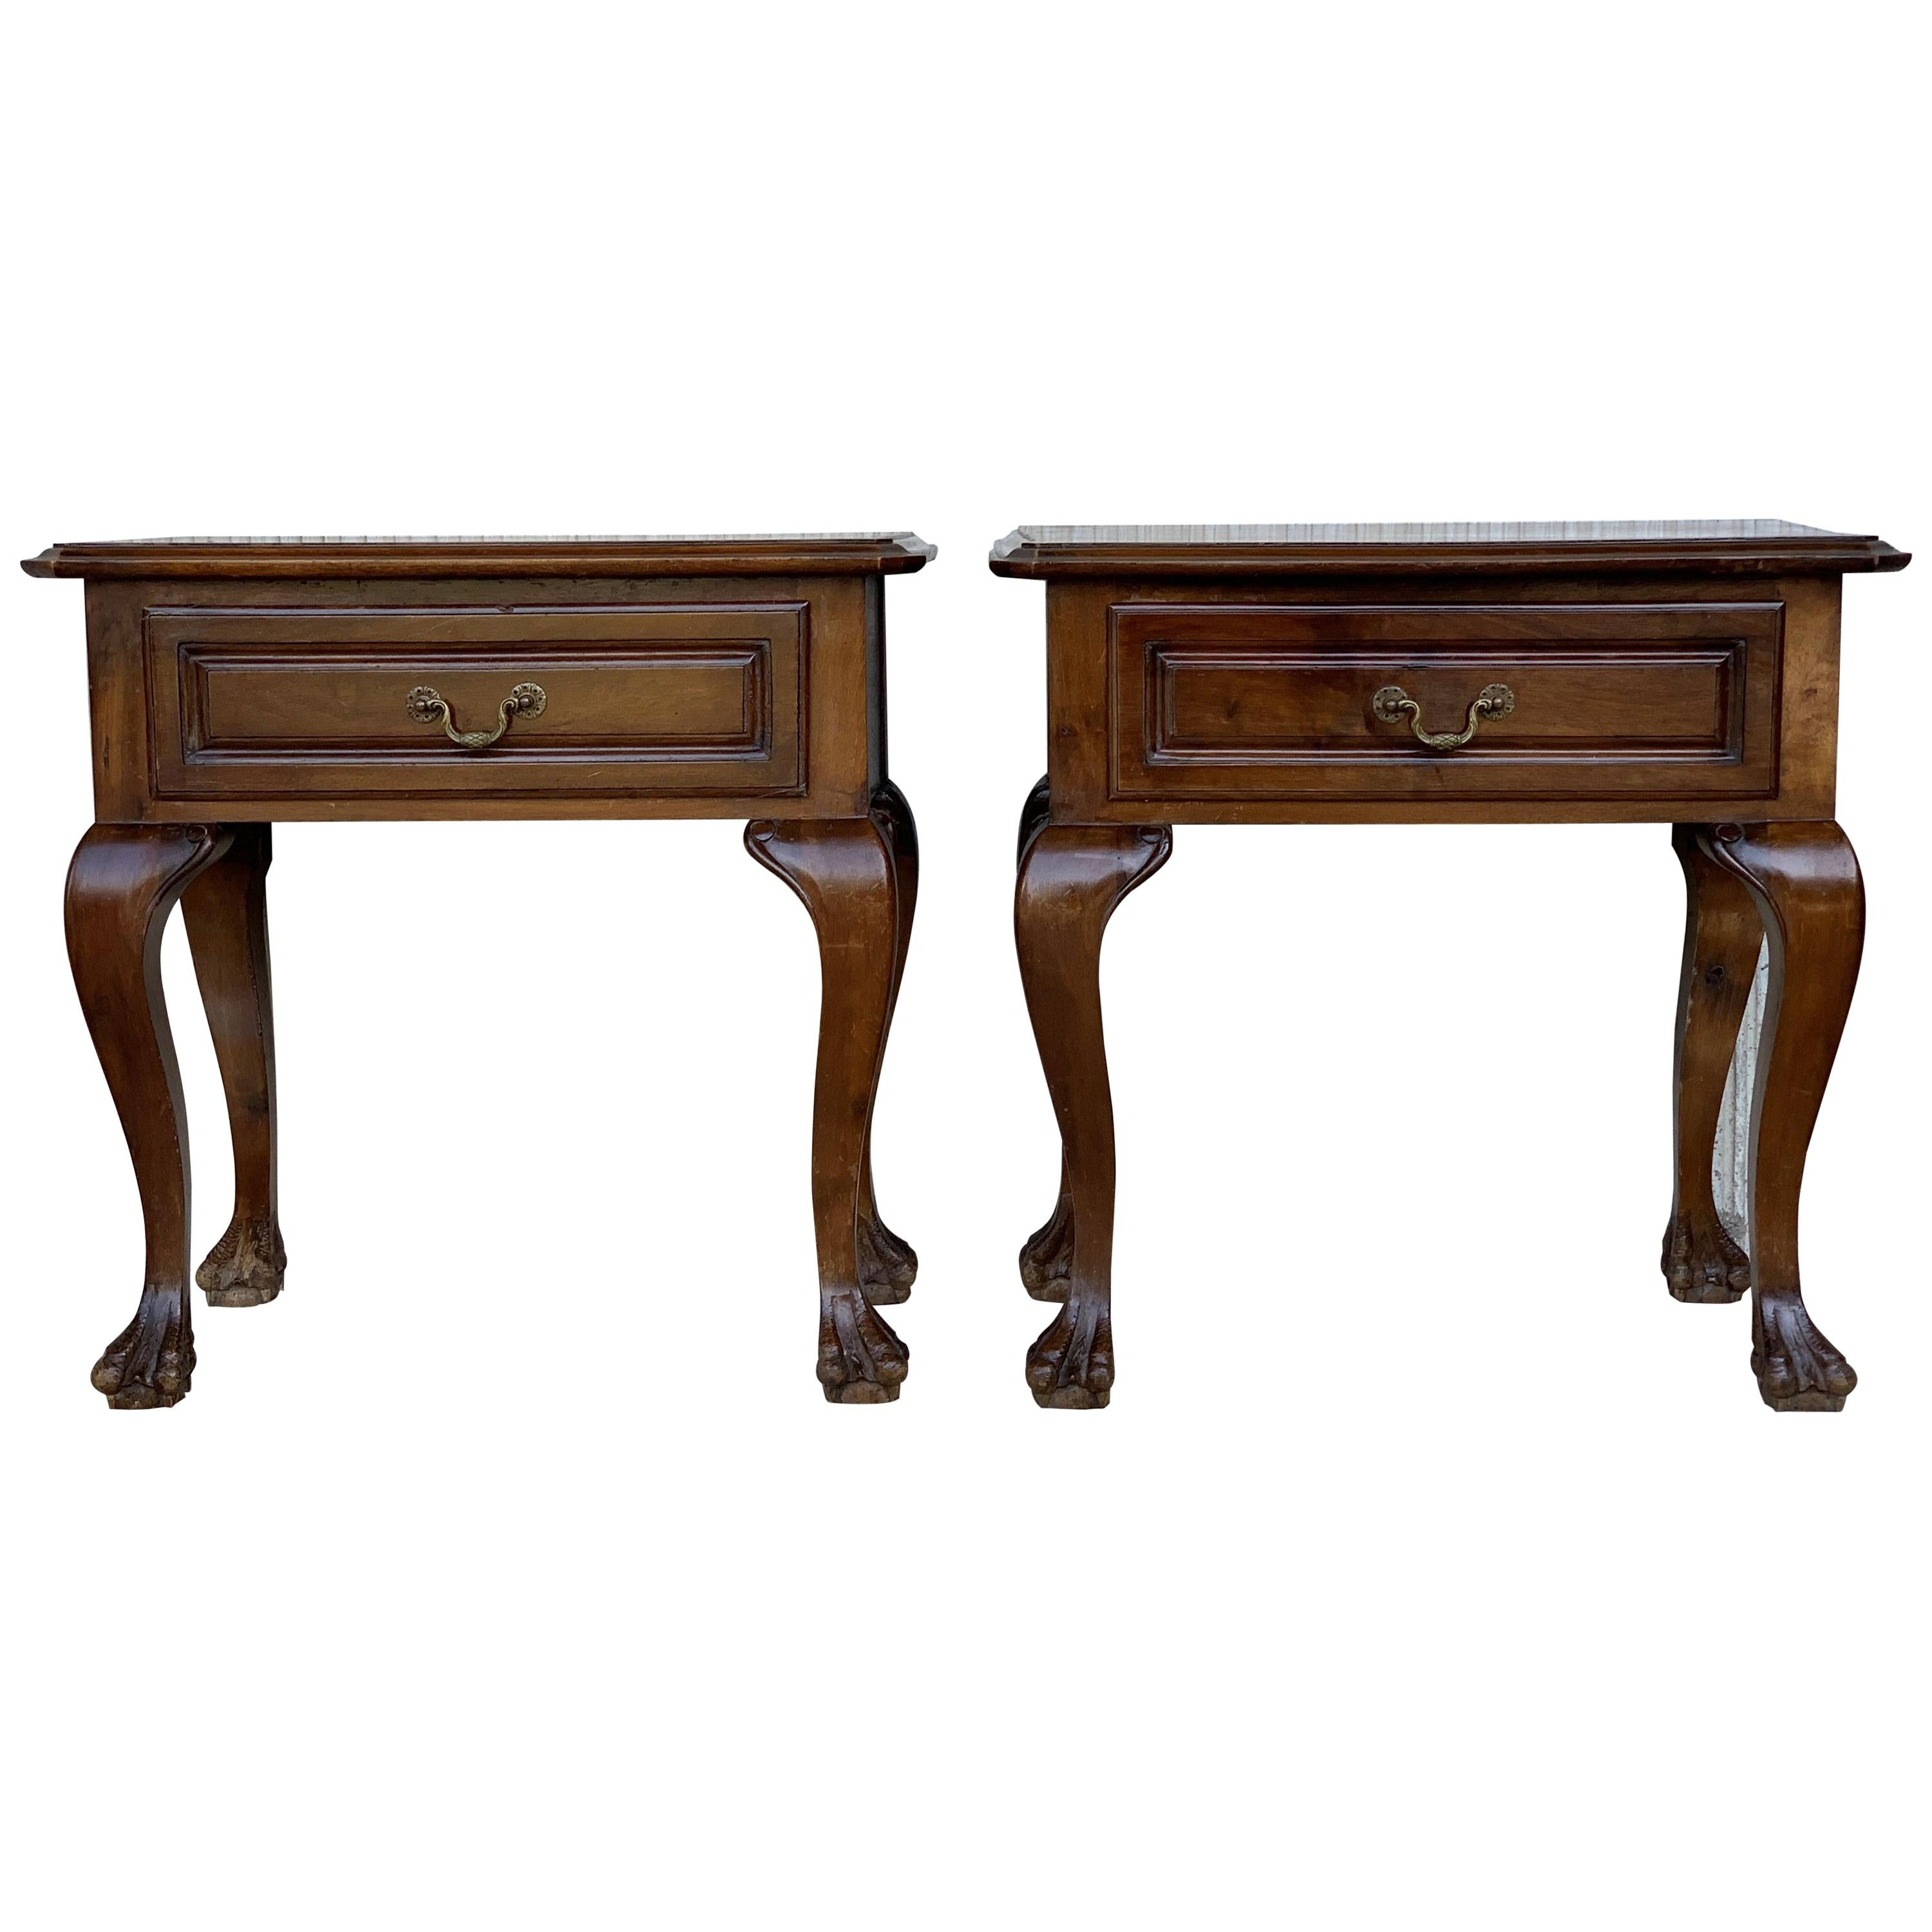 20th Century Pair of French Nightstands with One Drawer and Claw Feet